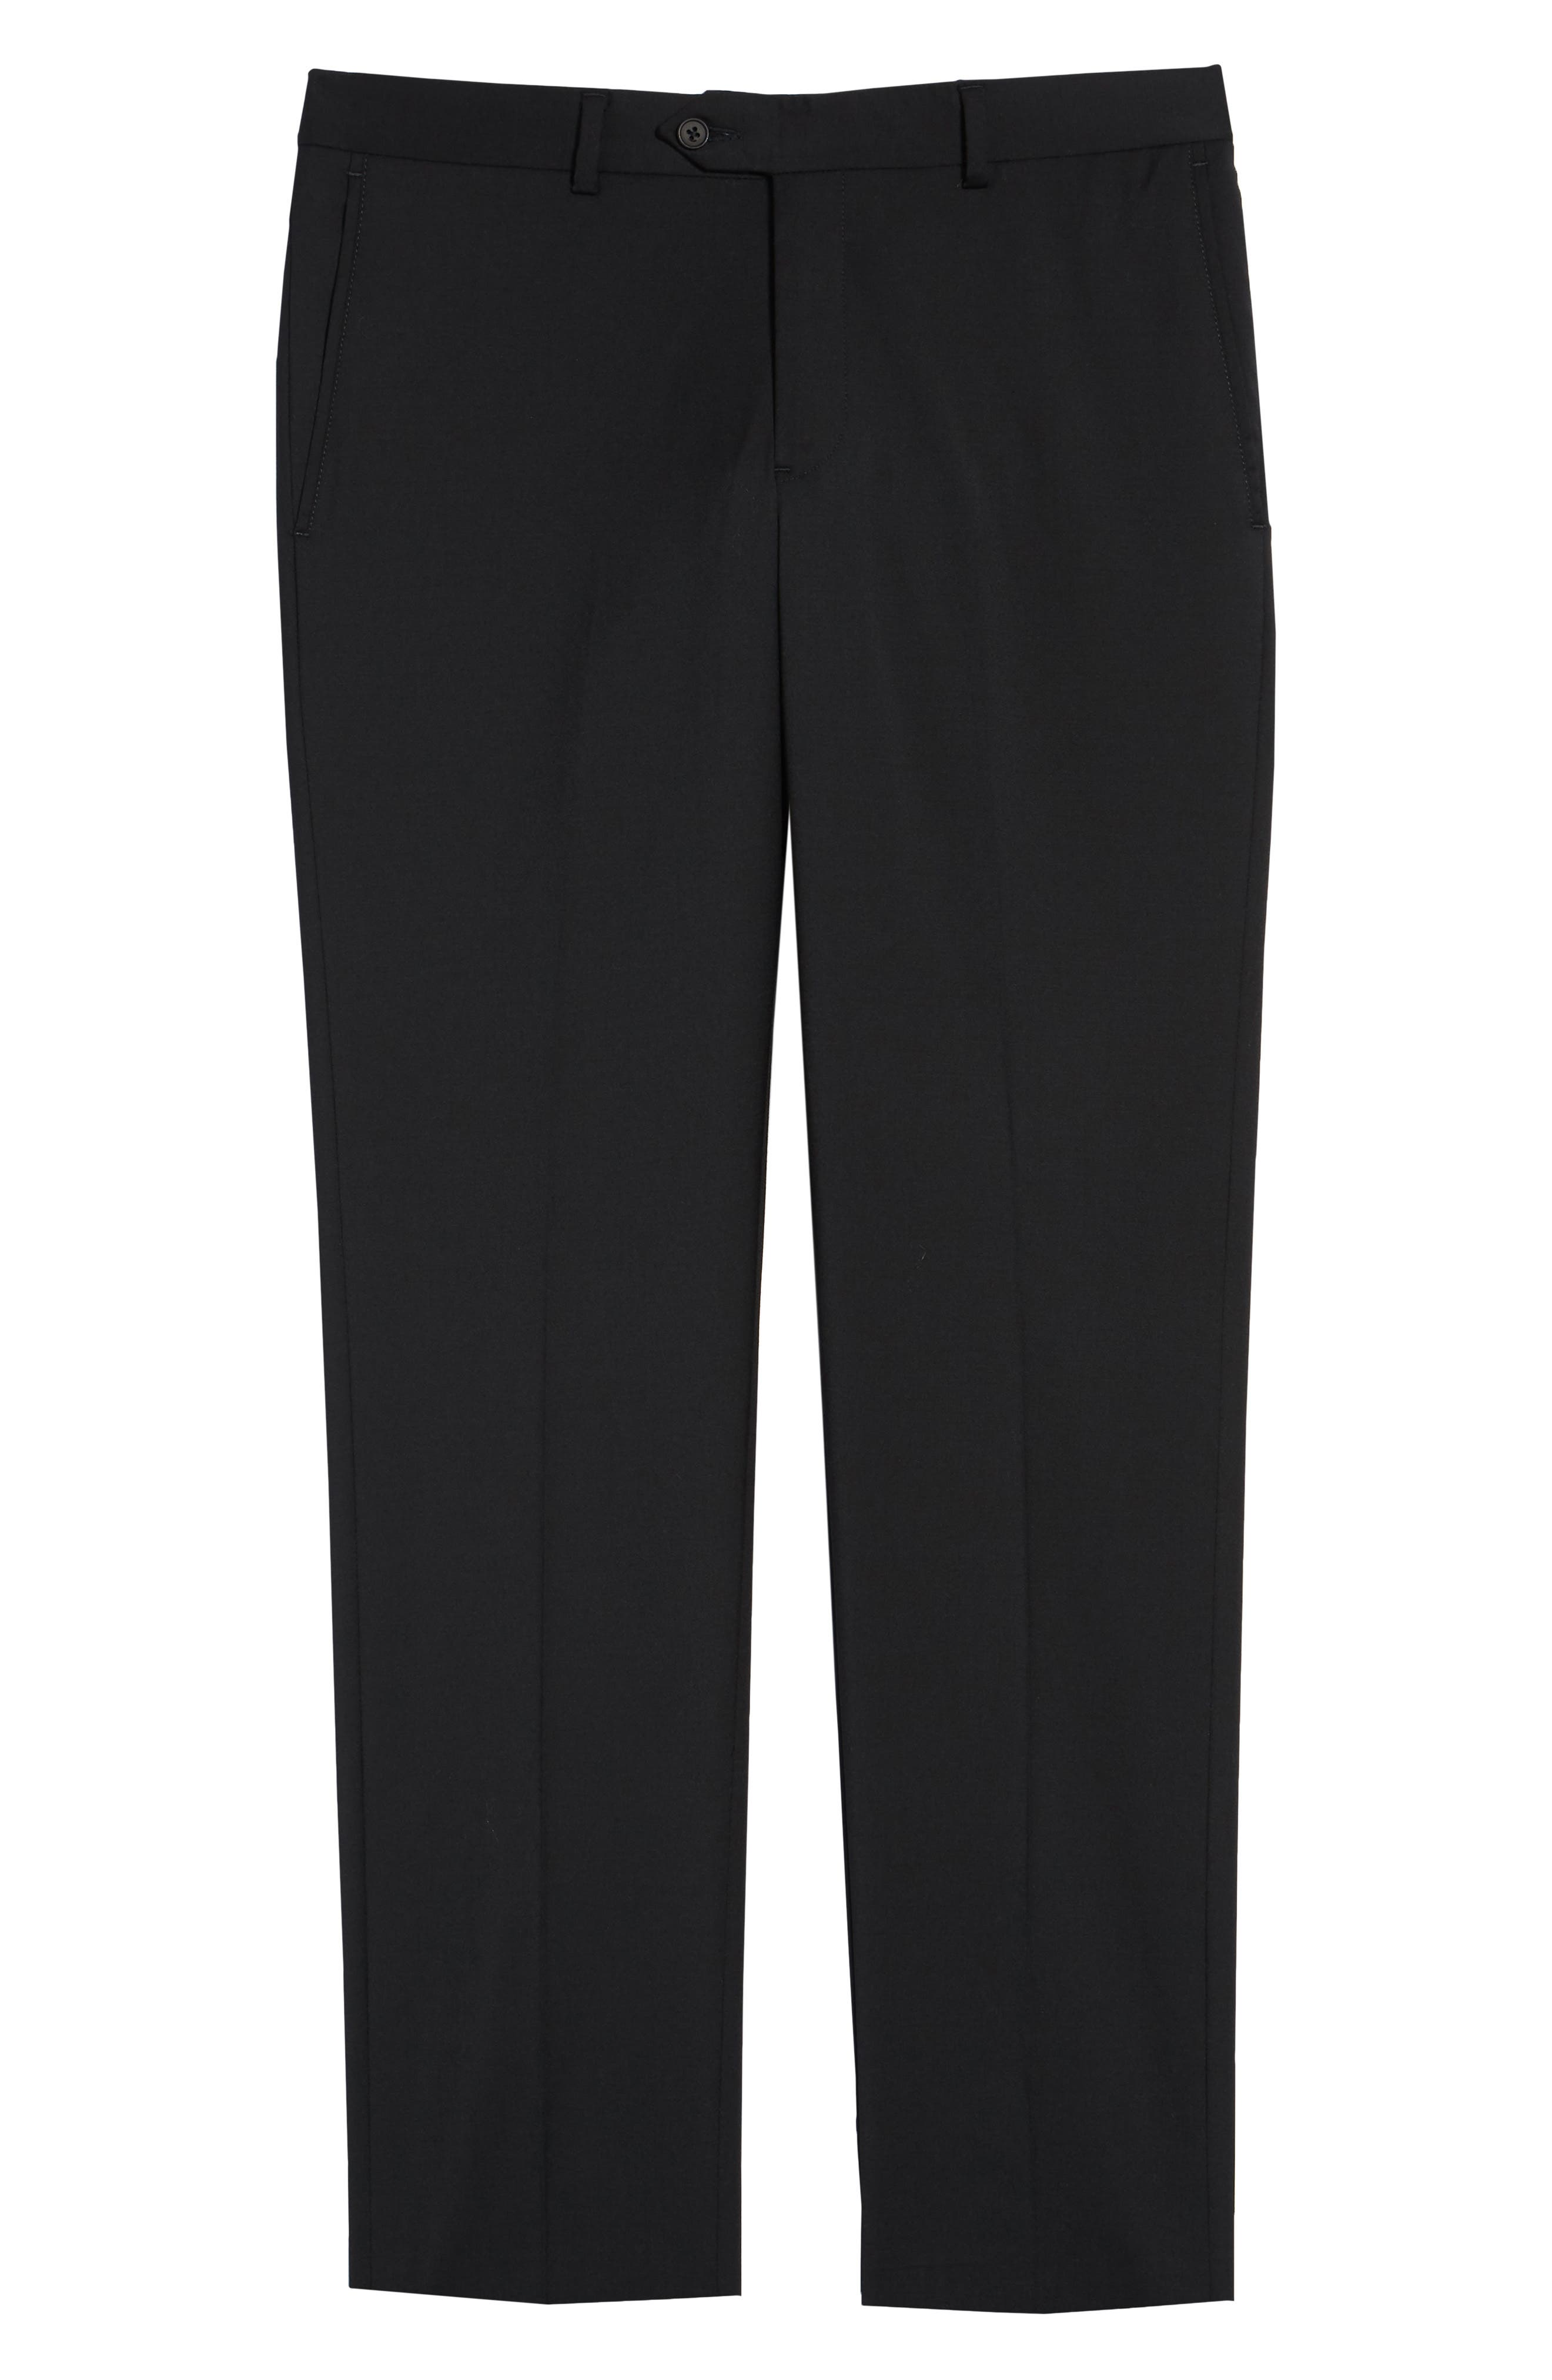 Trim Fit Stretch Wool Trousers,                             Alternate thumbnail 6, color,                             BLACK